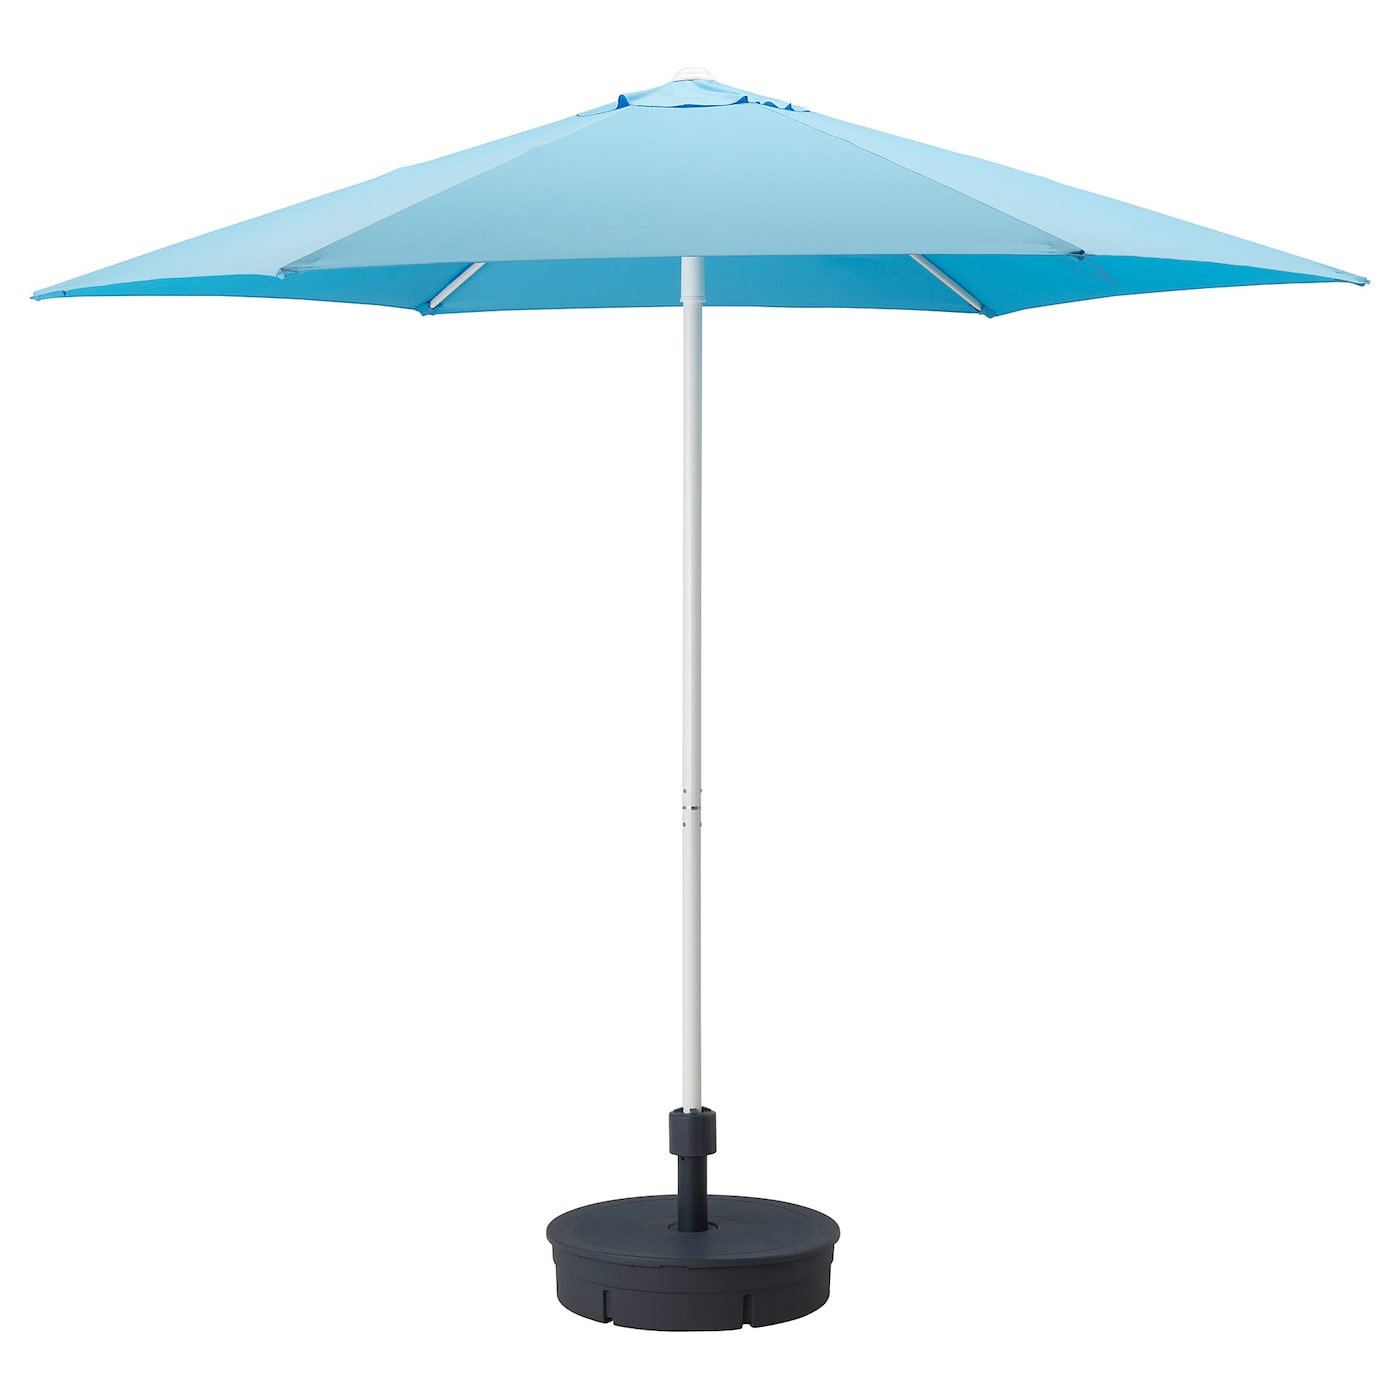 IKEA HÖGÖN parasol with base The air vent reduces wind pressure and allows heat to circulate.